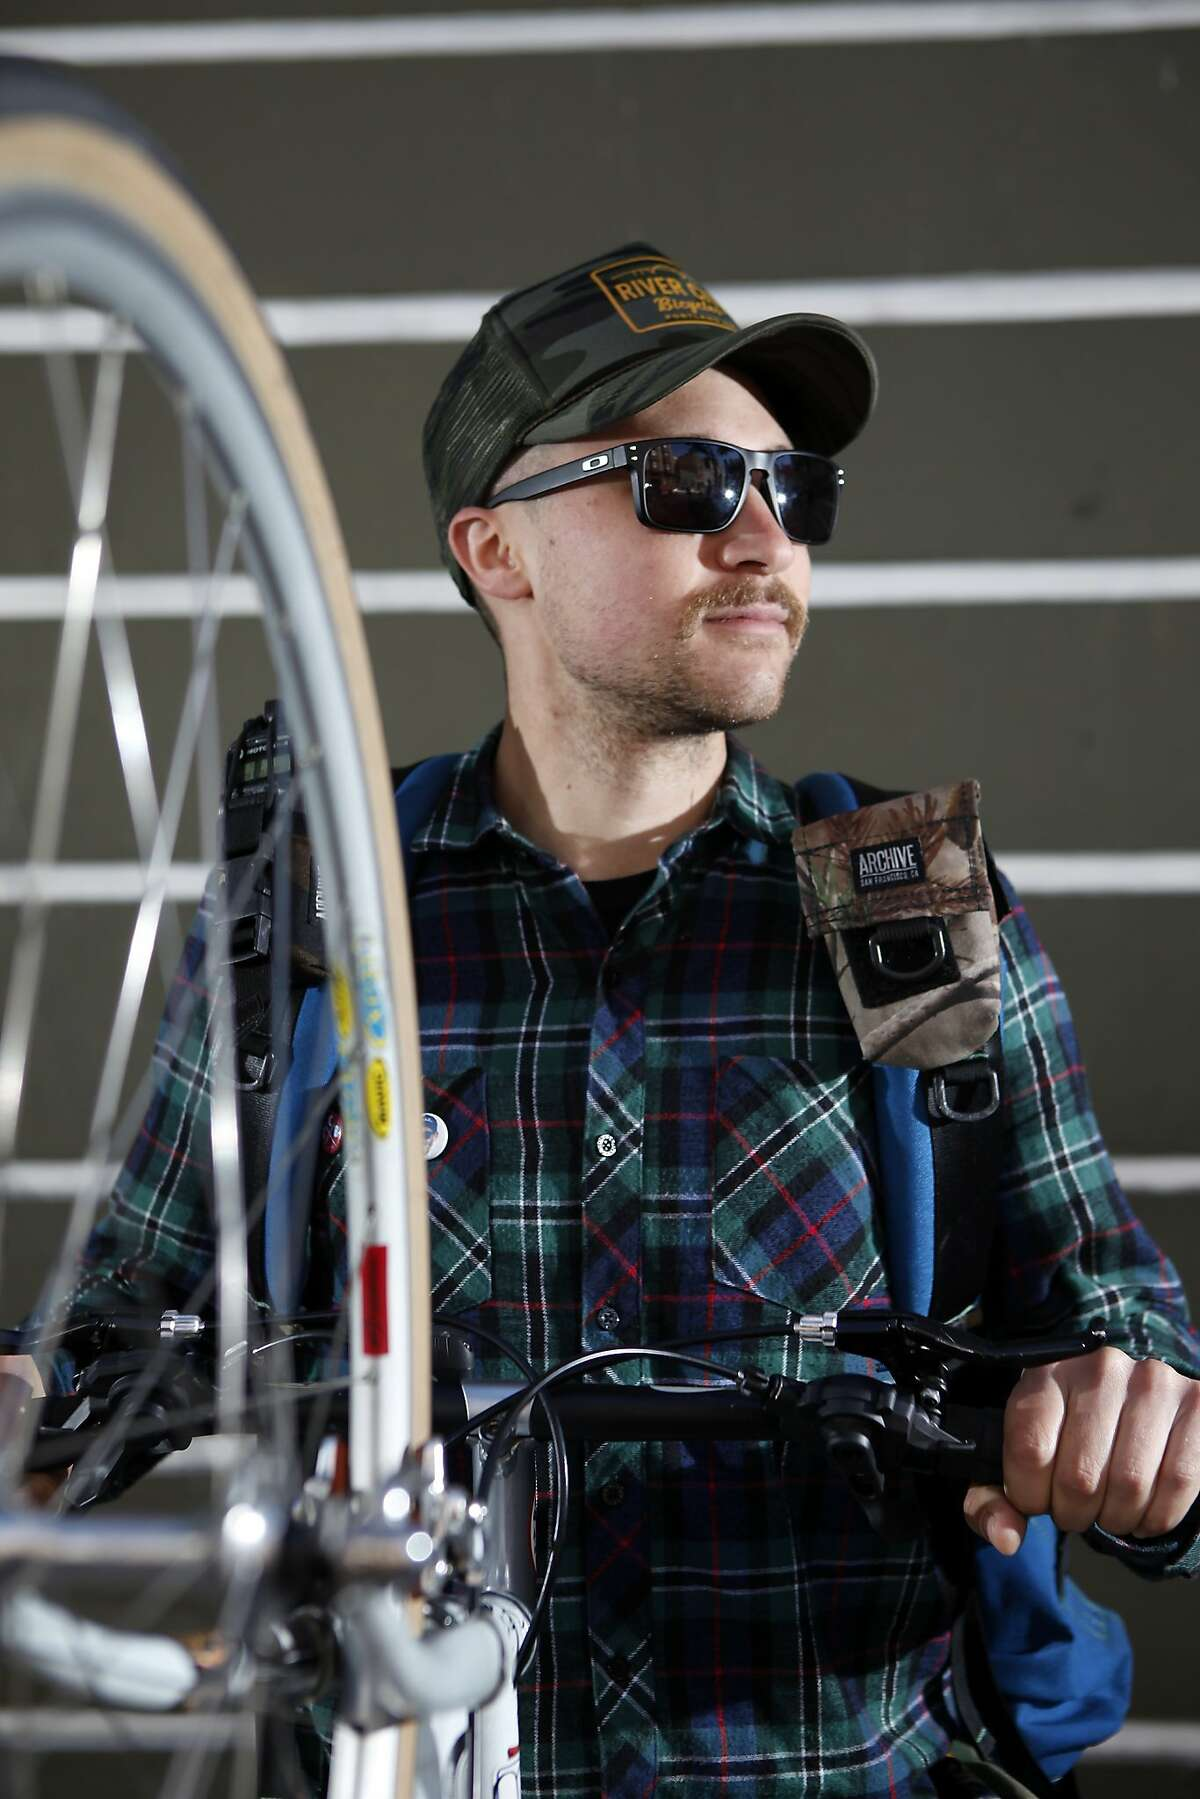 TCB Couriers' Brandon Harrison of San Francisco poses for a portrait near the company's office in San Francisco, CA, Tuesday April 22, 2014.